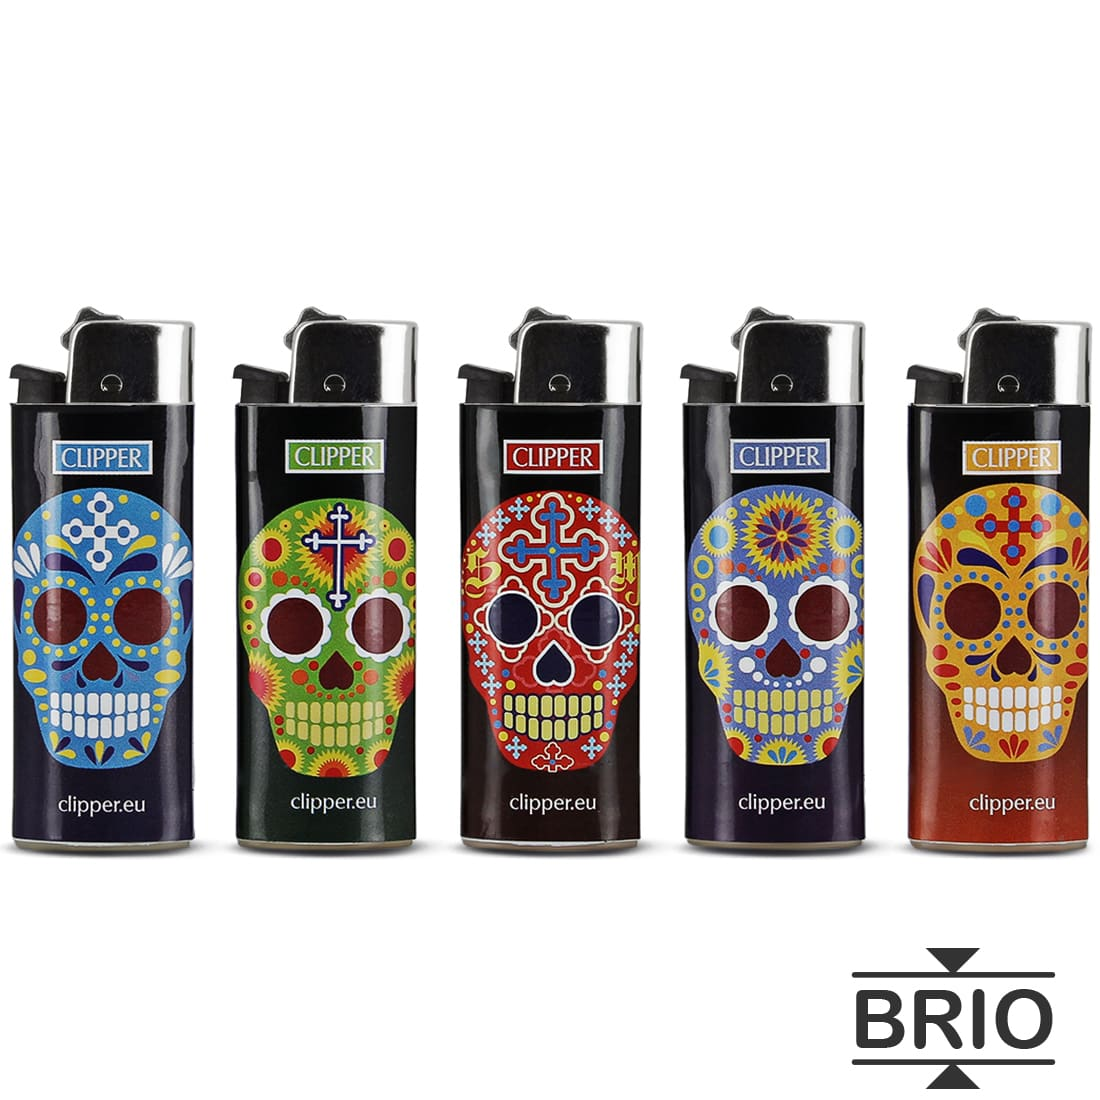 Photo #1 de Briquet Clipper Brio Micro Tête de Mort Calaveras x 5